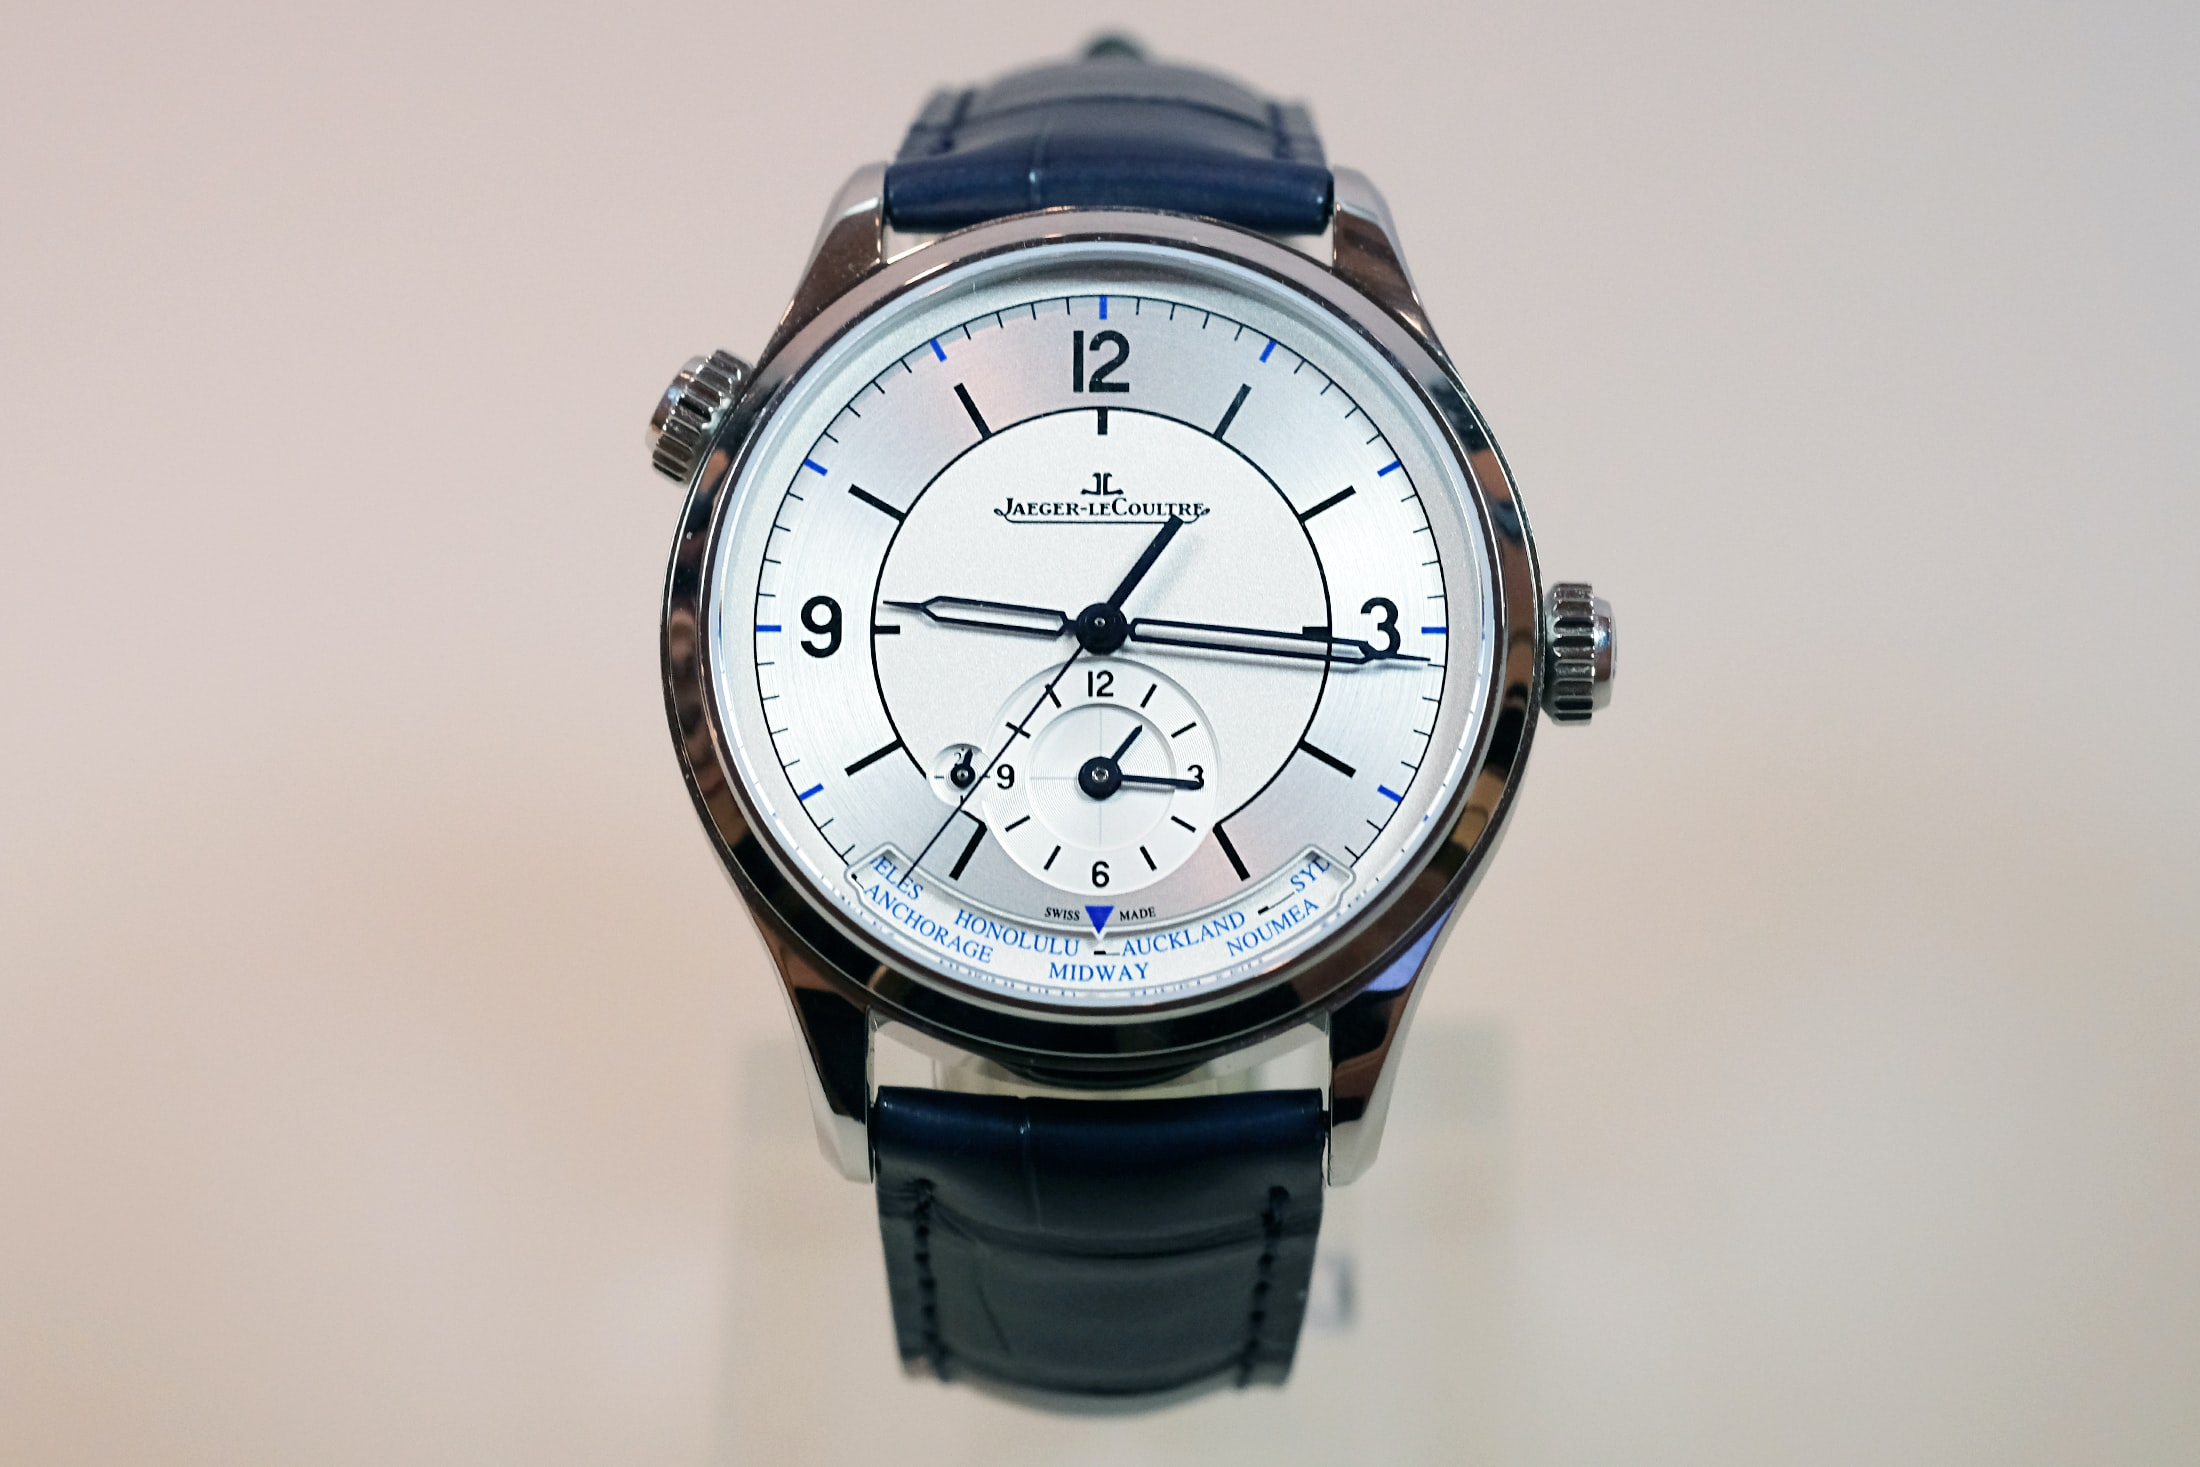 Introducing: The Jaeger-LeCoultre Master Control Collection With Sector Dials (Live Pics + Pricing) Introducing: The Jaeger-LeCoultre Master Control Collection With Sector Dials (Live Pics + Pricing) sector 09